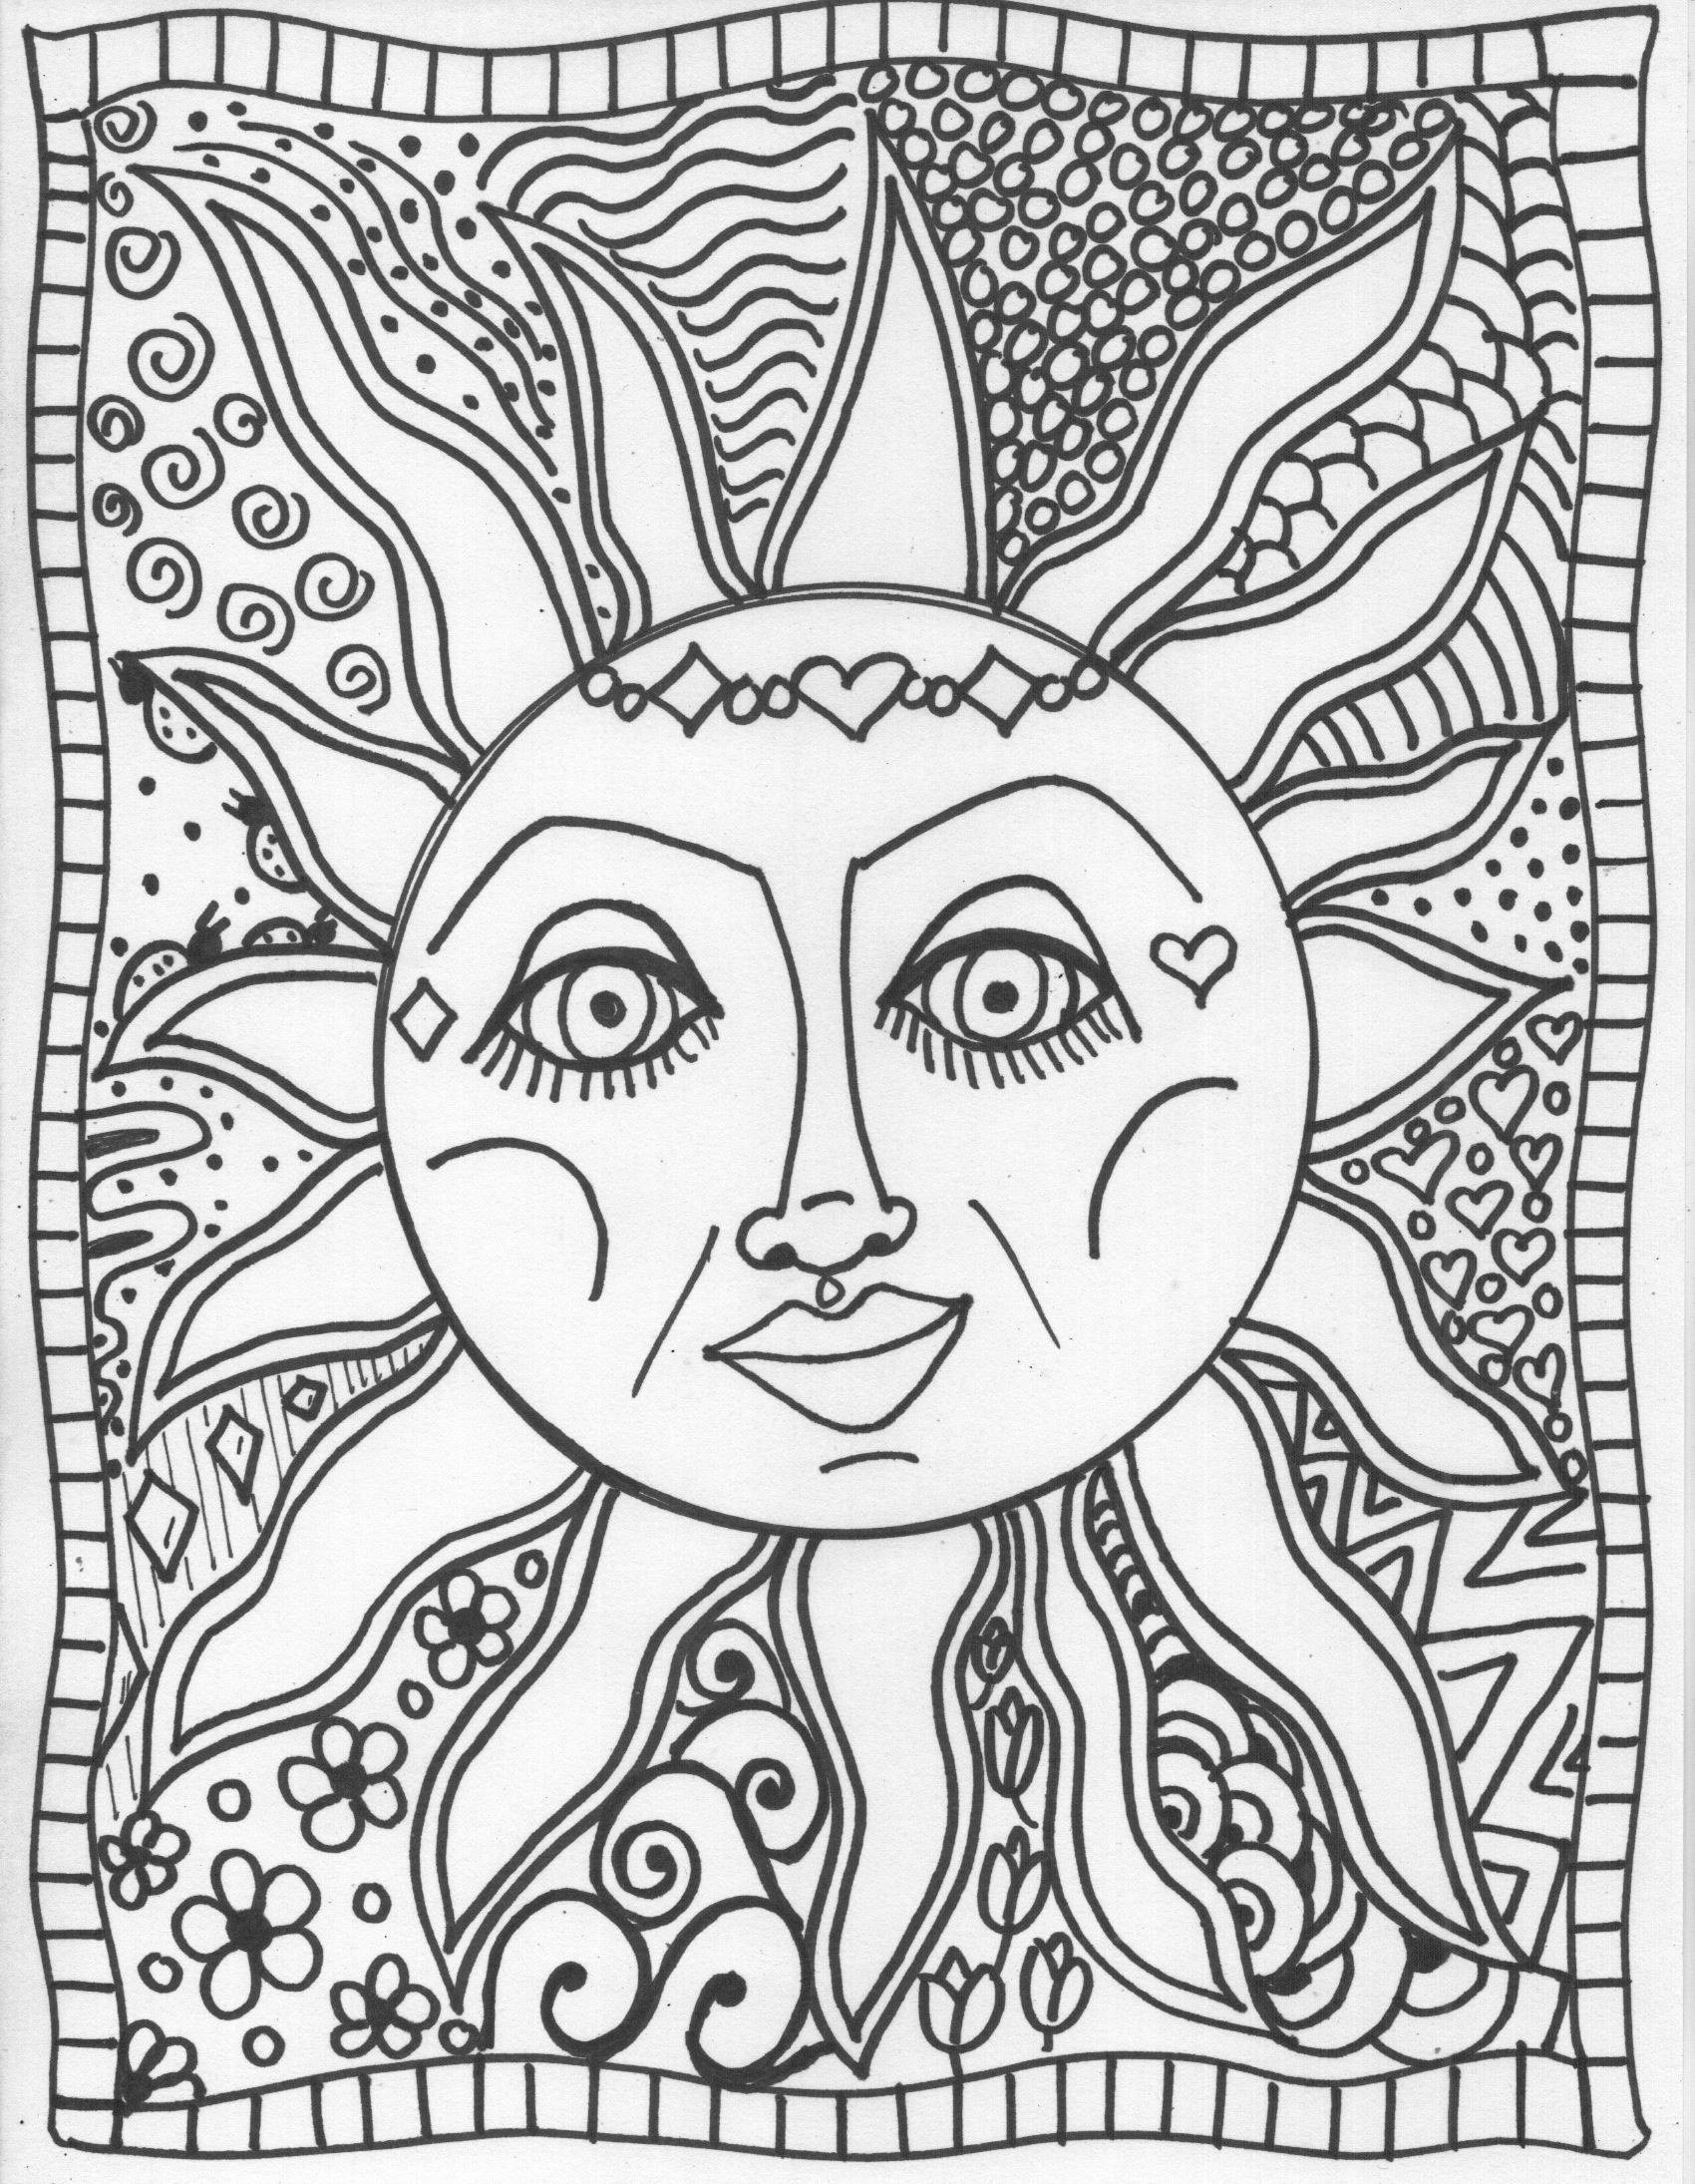 Trippy Alice In Wonderland Coloring Pages In 2020 Moon Coloring Pages Mandala Coloring Pages Tumblr Coloring Pages